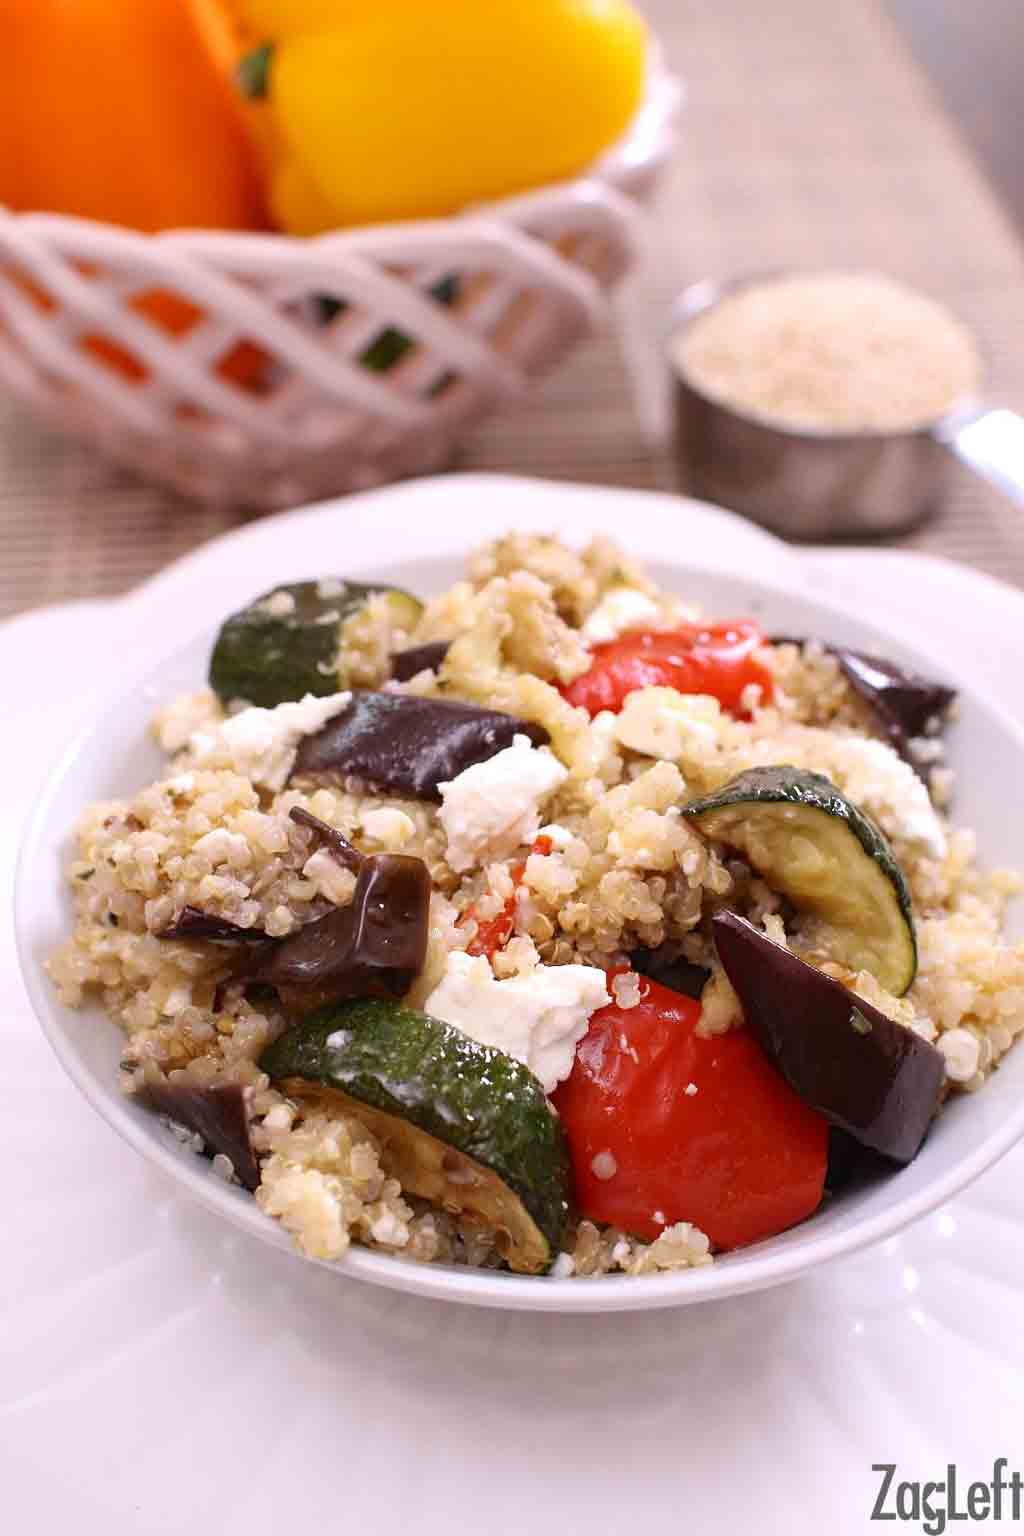 A hearty mixture of quinoa, roasted eggplant, zucchini and red peppers, this generous salad is a meal in a bowl. This Roasted Vegetable and Quinoa Salad is perfect as a side dish or as the main course.